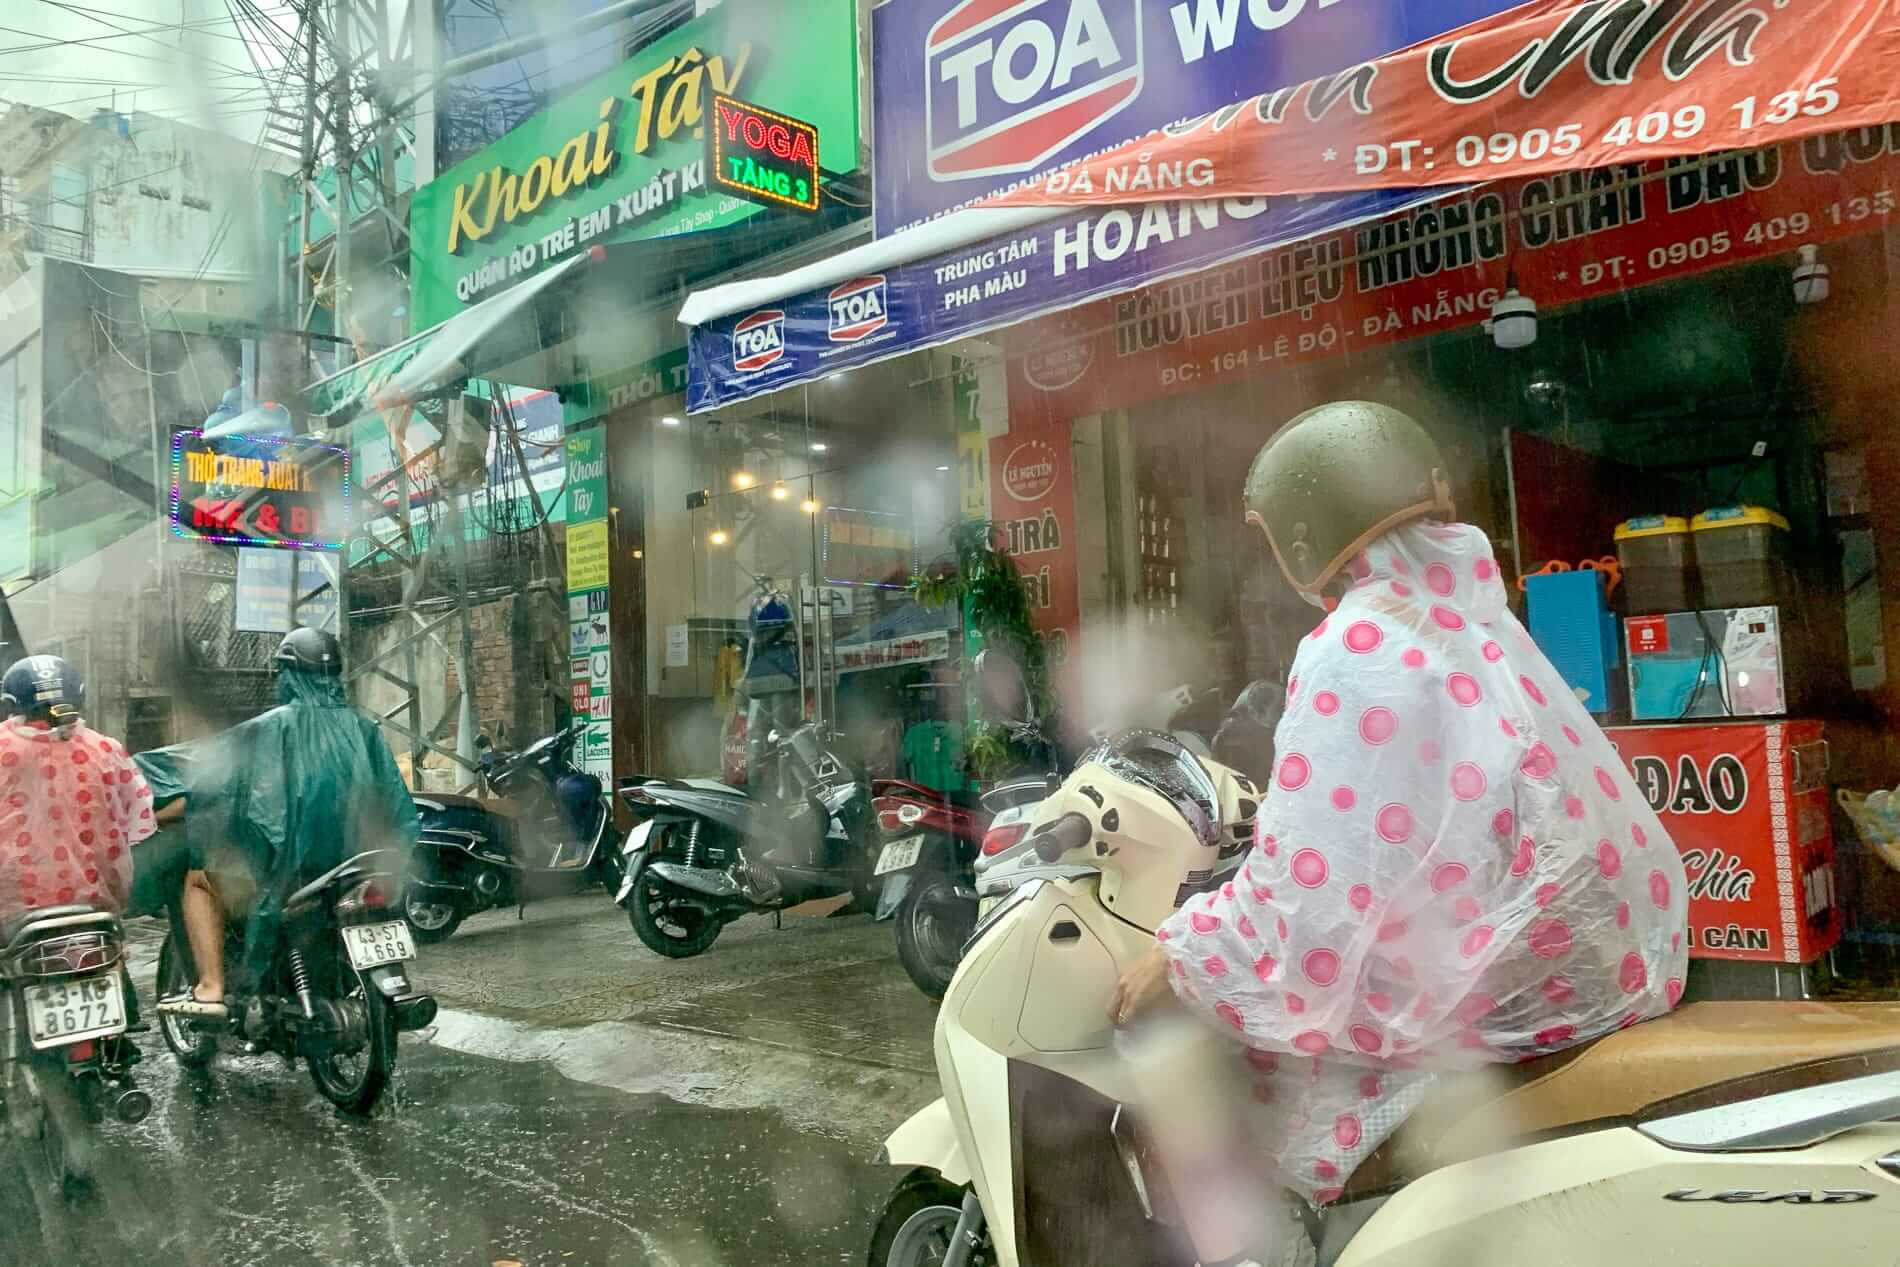 Motorbikes drive through the rain in Da Nang